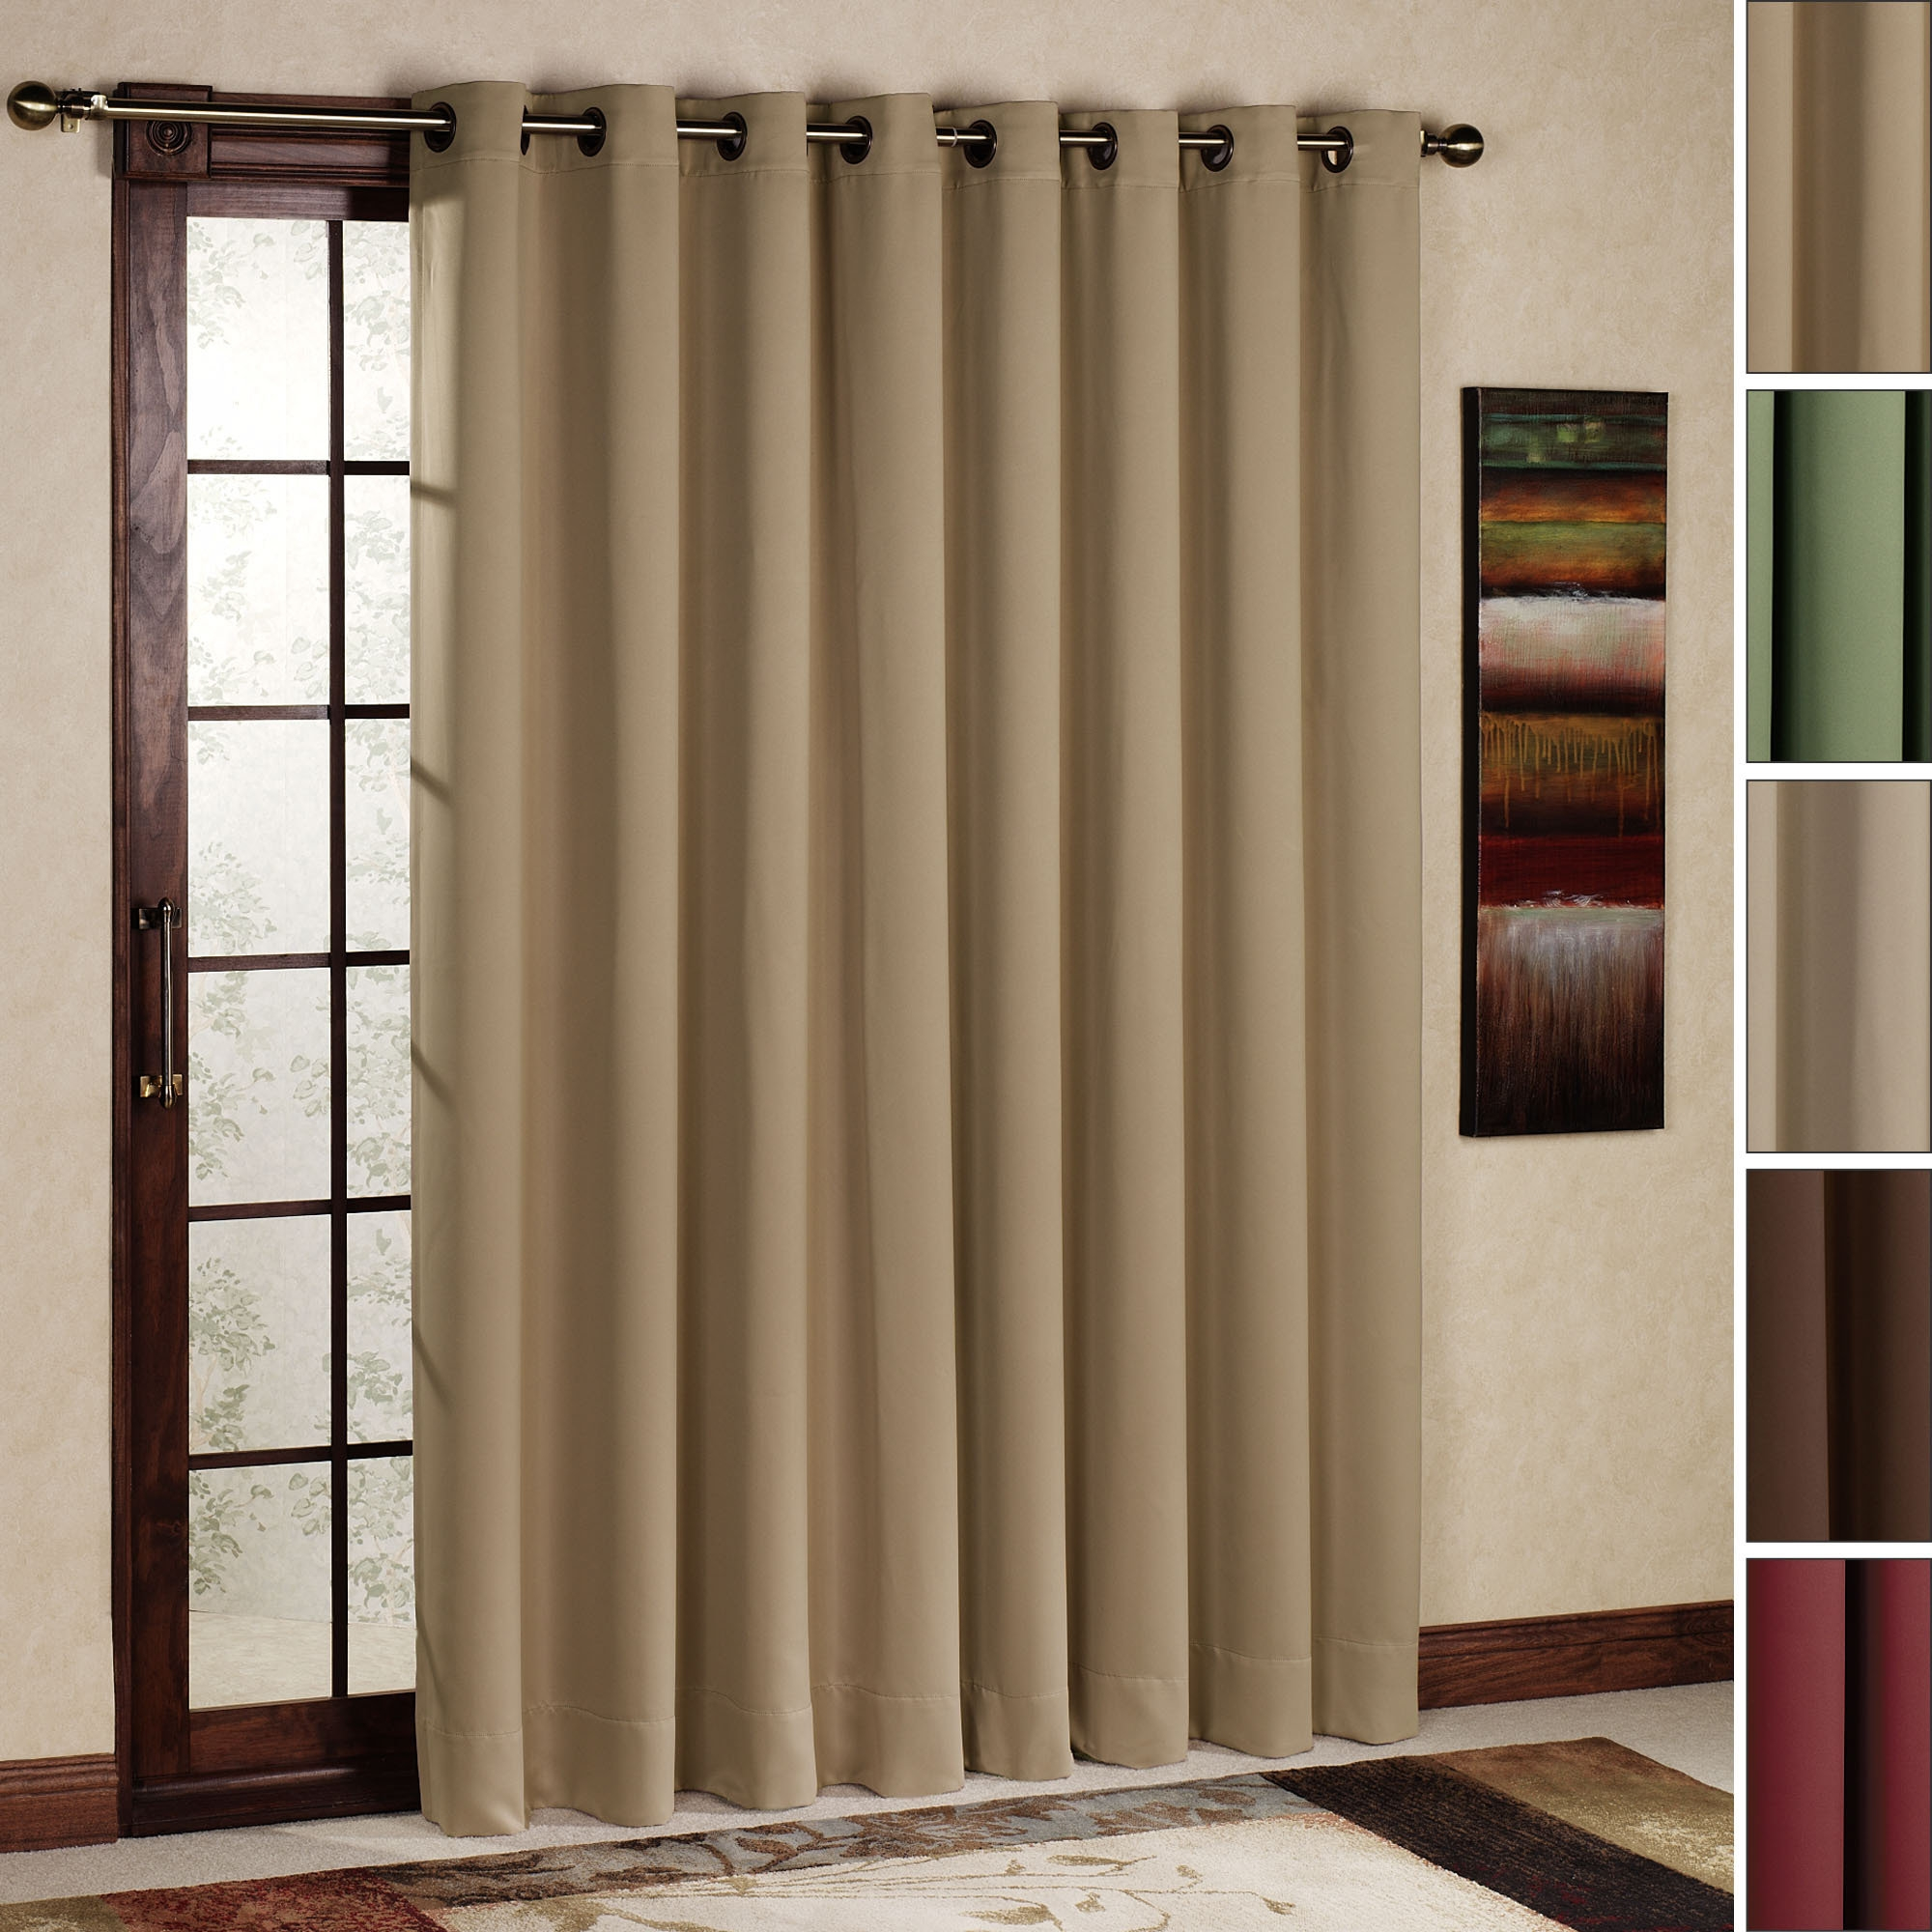 Curtains For Sliding Doors Ideas find this pin and more on curtains ideas alluring sliding glass door Ideas For Sliding Glass Door Curtains